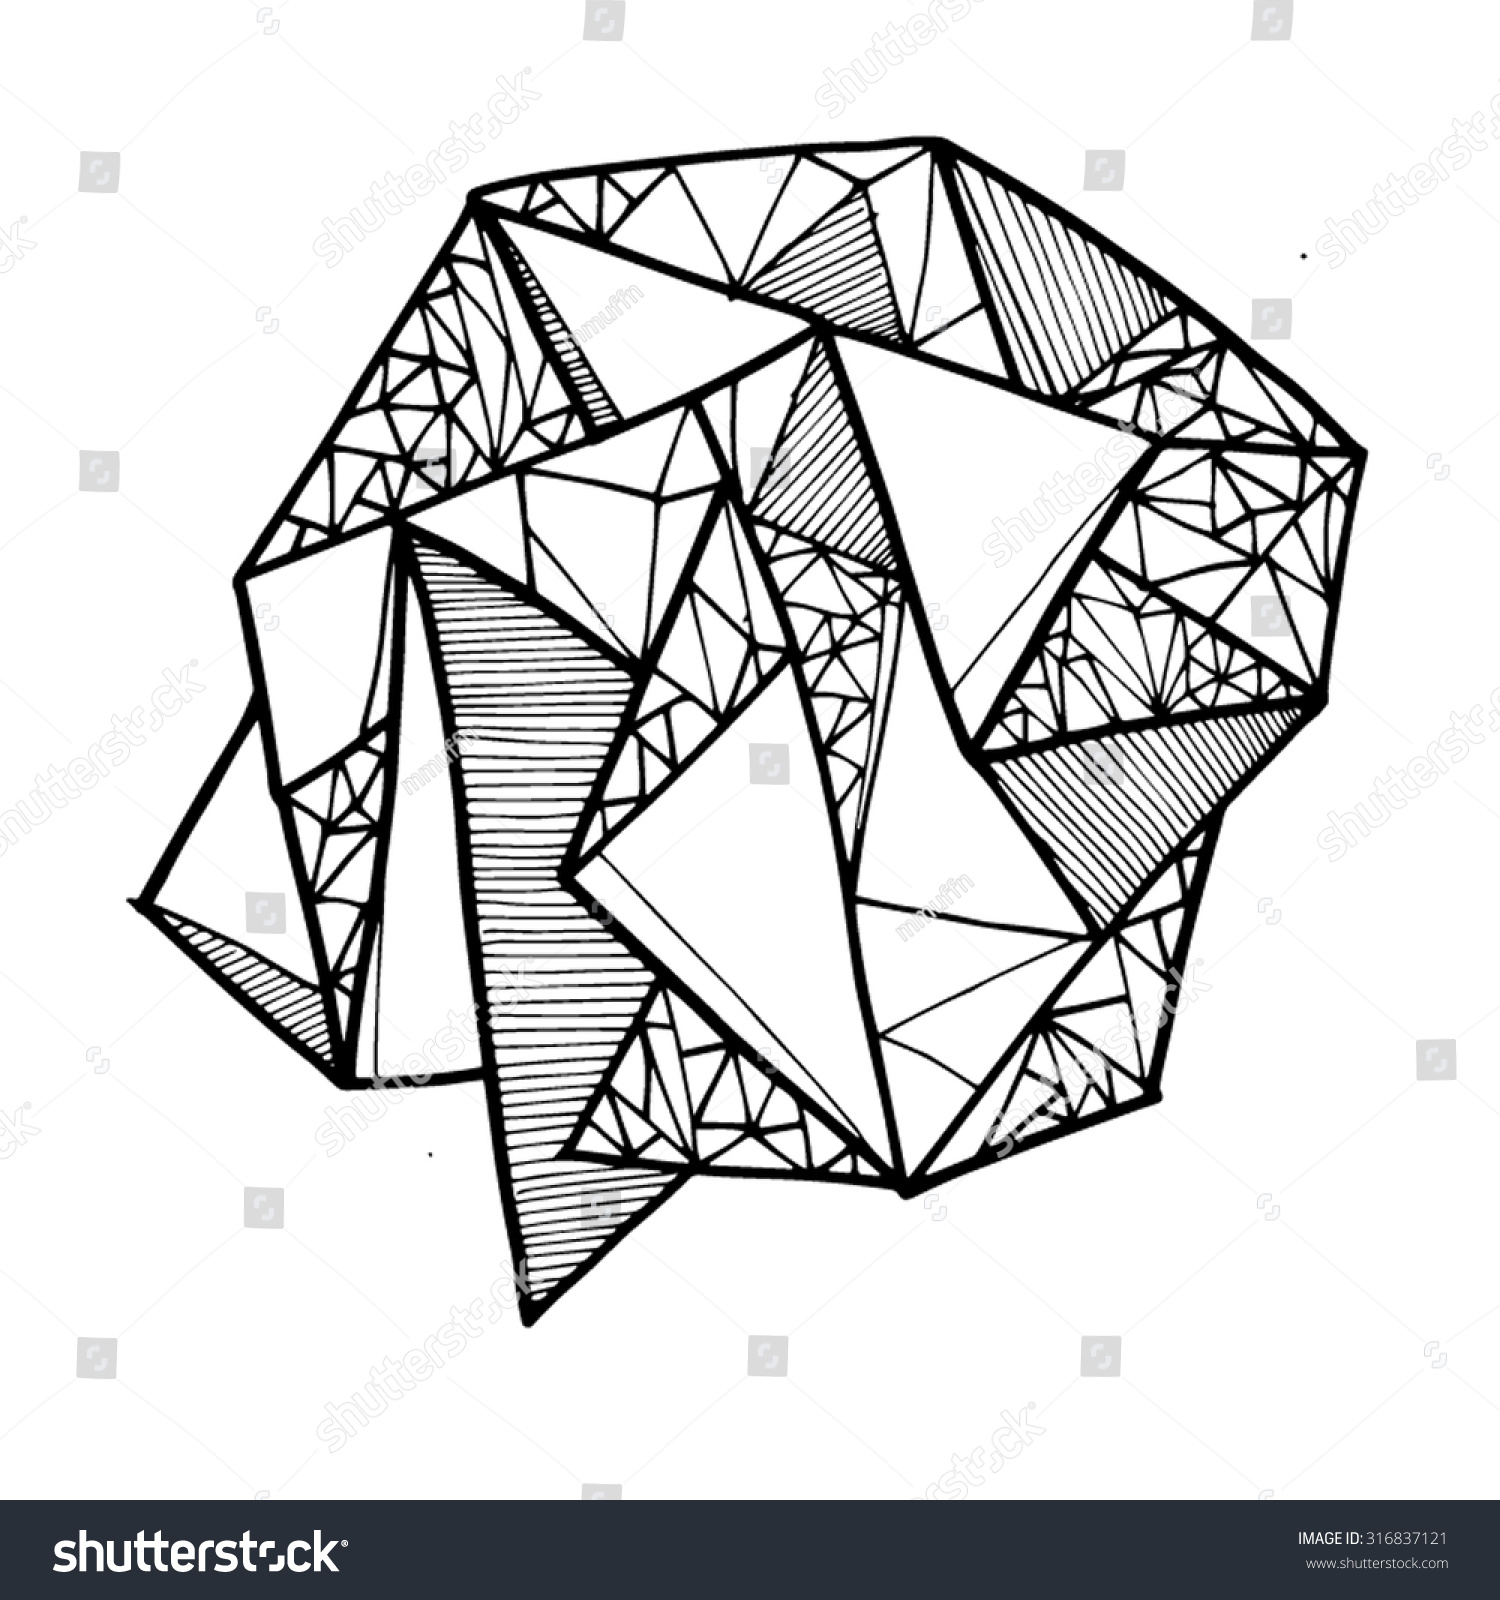 Drawing Vector Lines In Photo : Geometric shape lines lineart shapes line stock vector